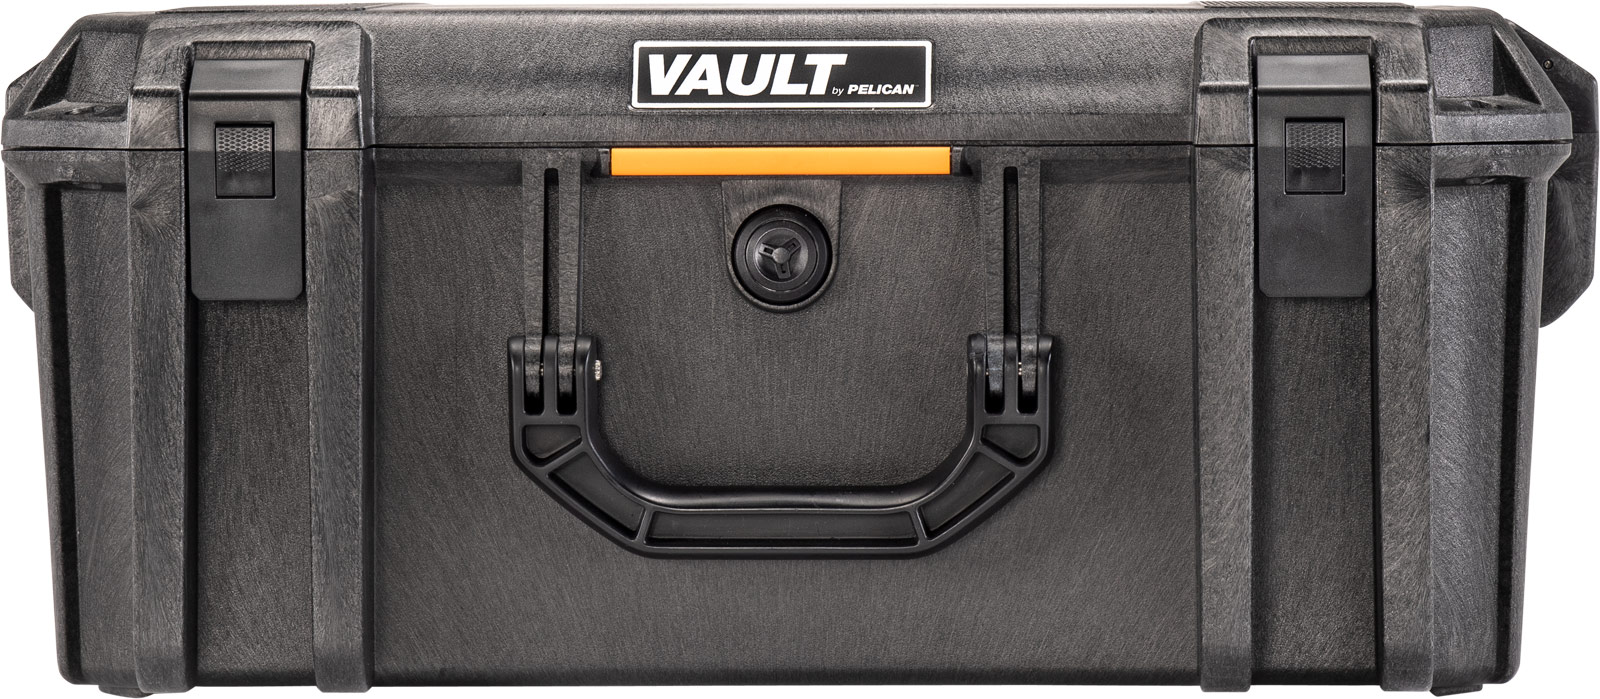 buy pelican vault v550 shop protective case